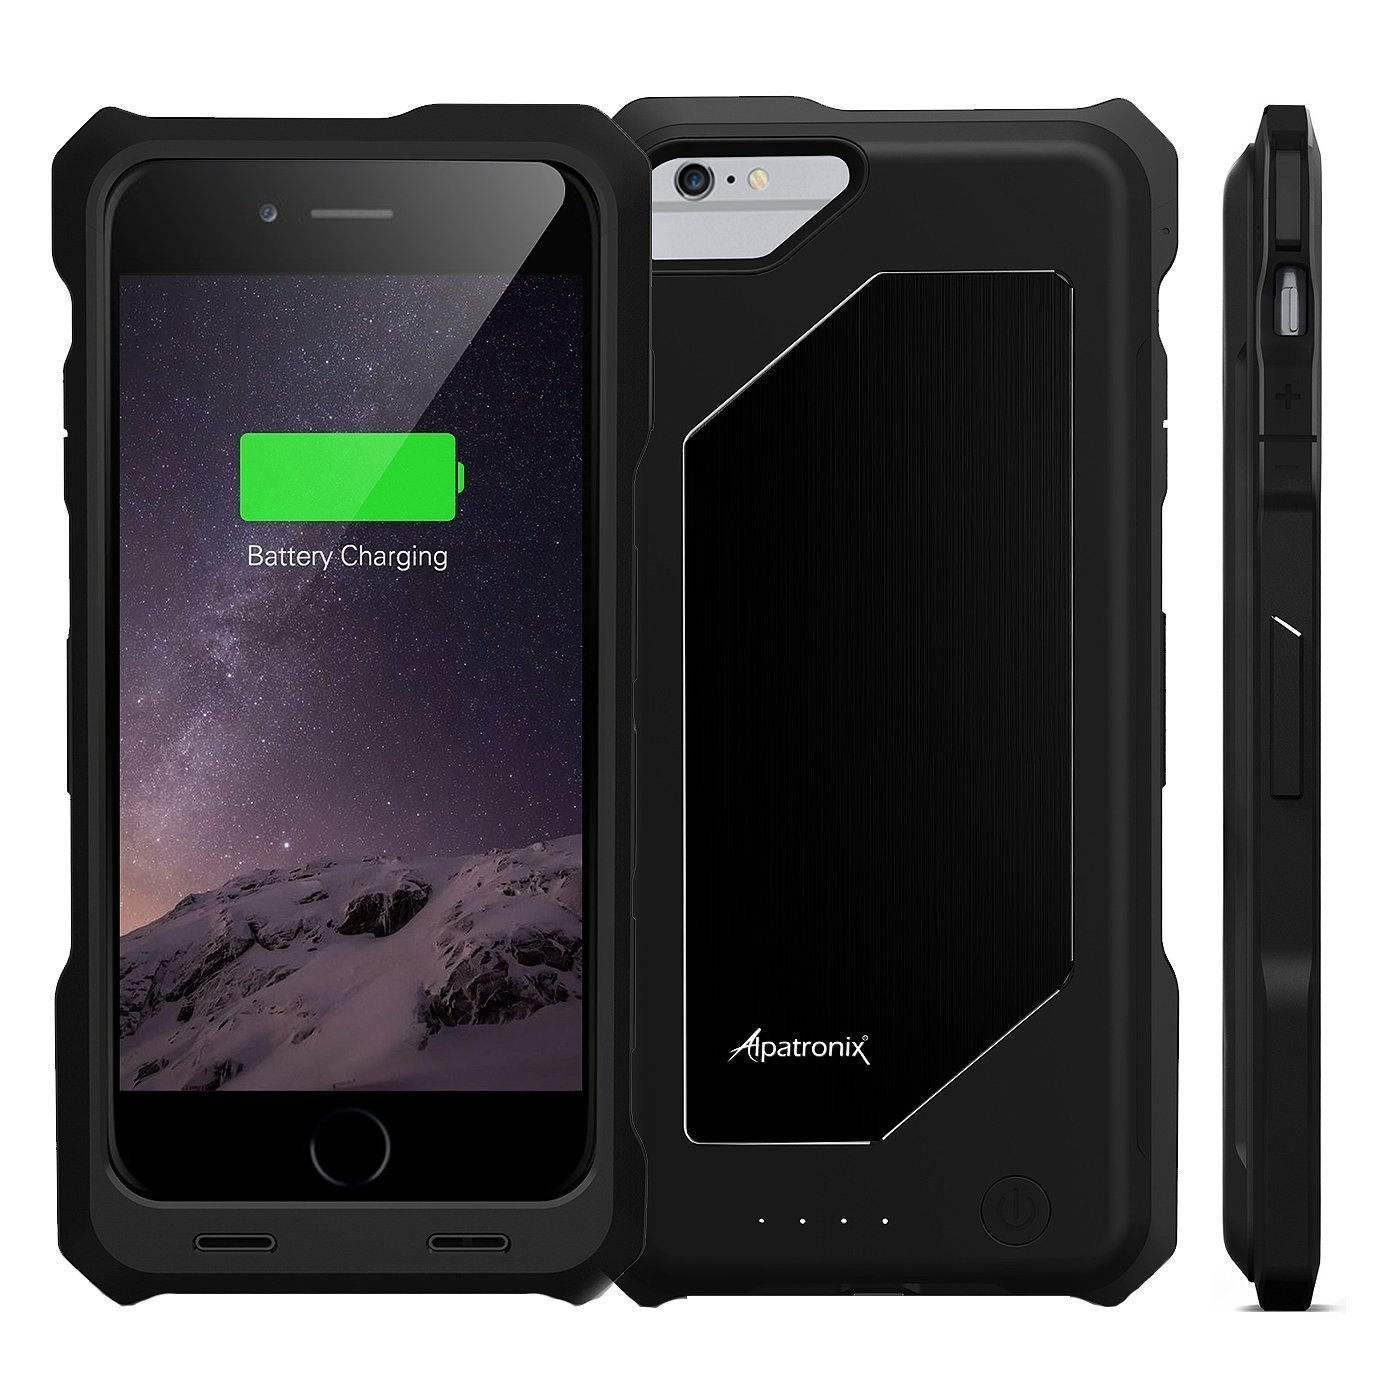 Alpatronix iPhone Cases | How to avoid a dead battery | Tech